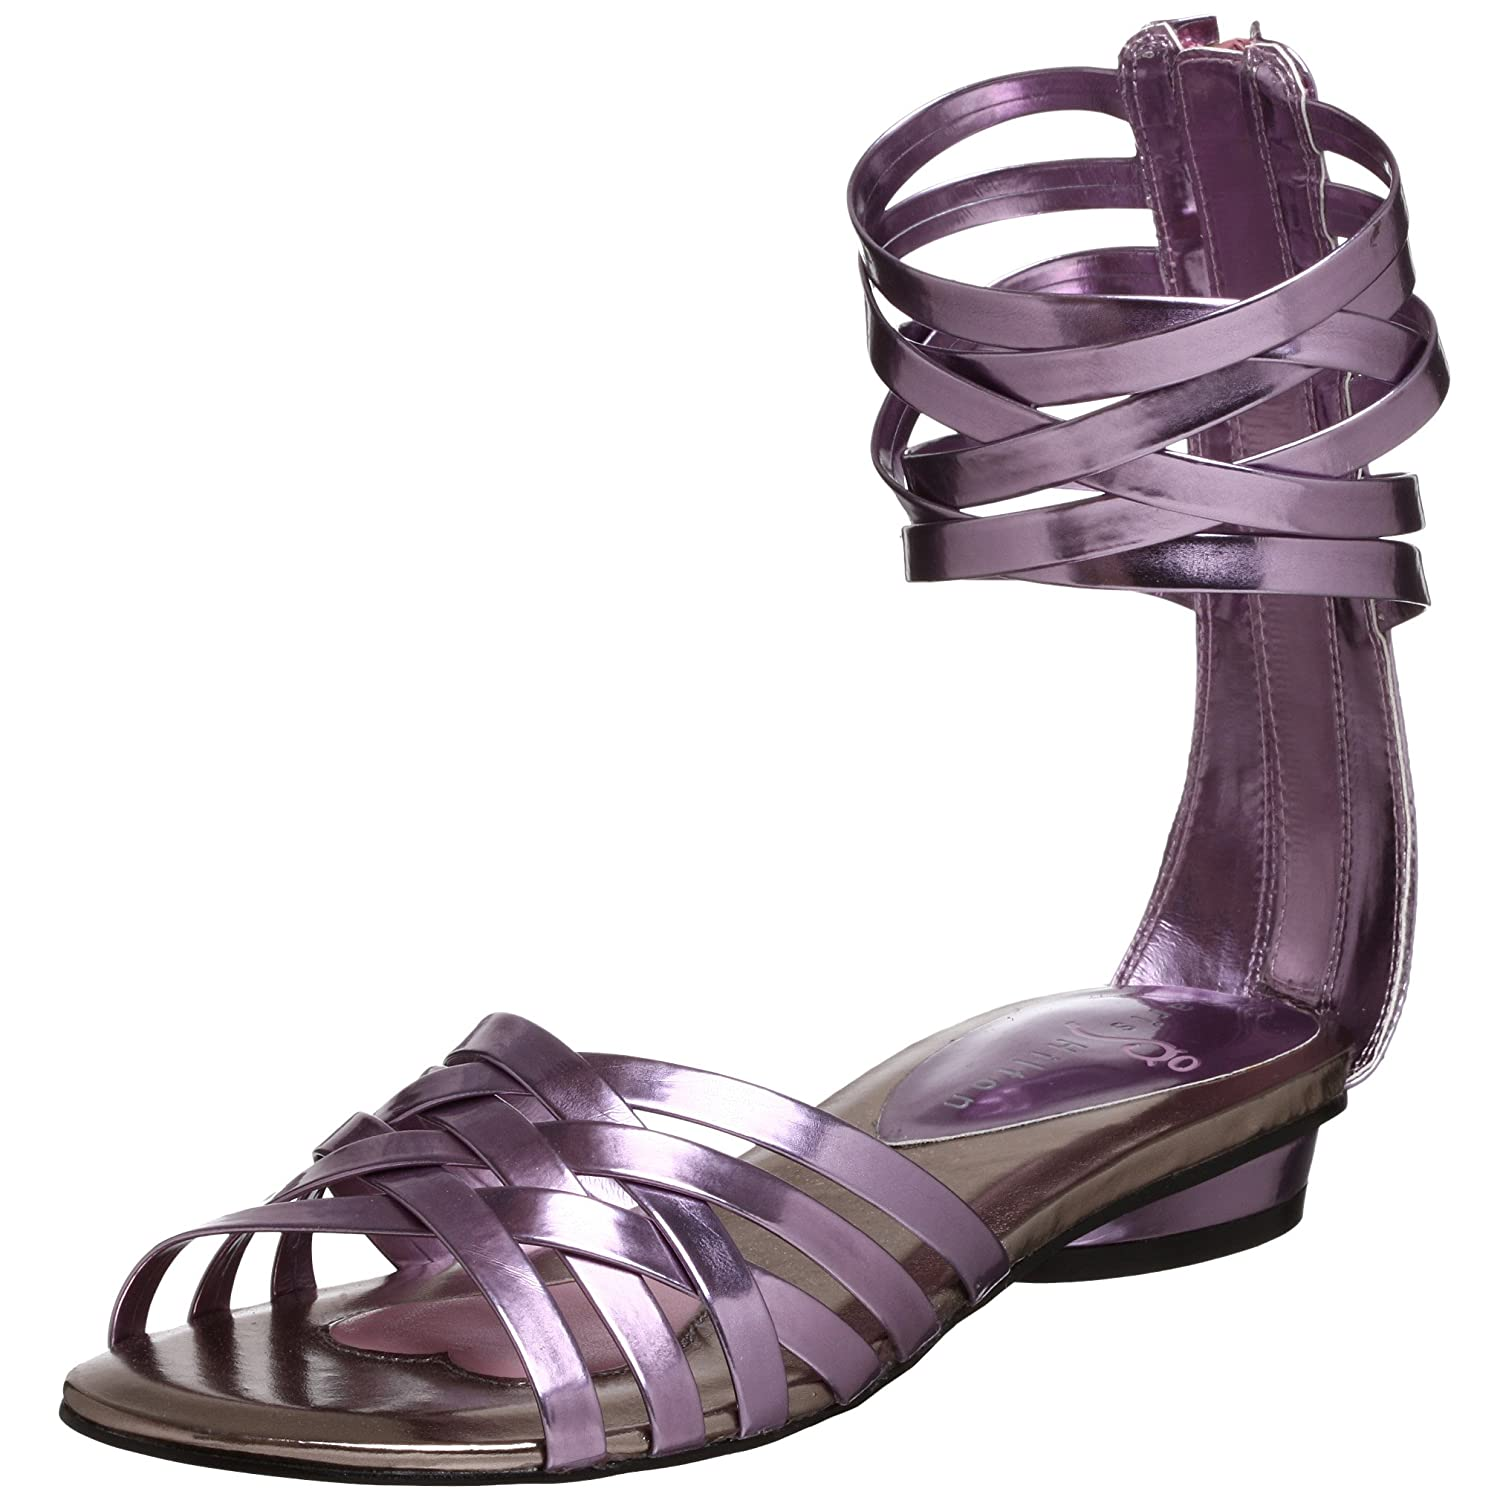 Endless.com: Paris Hilton Women's Goddess Gladiator Sandal: Categories - Free Overnight Shipping & Return Shipping :  collection ballet flats dressy metallic